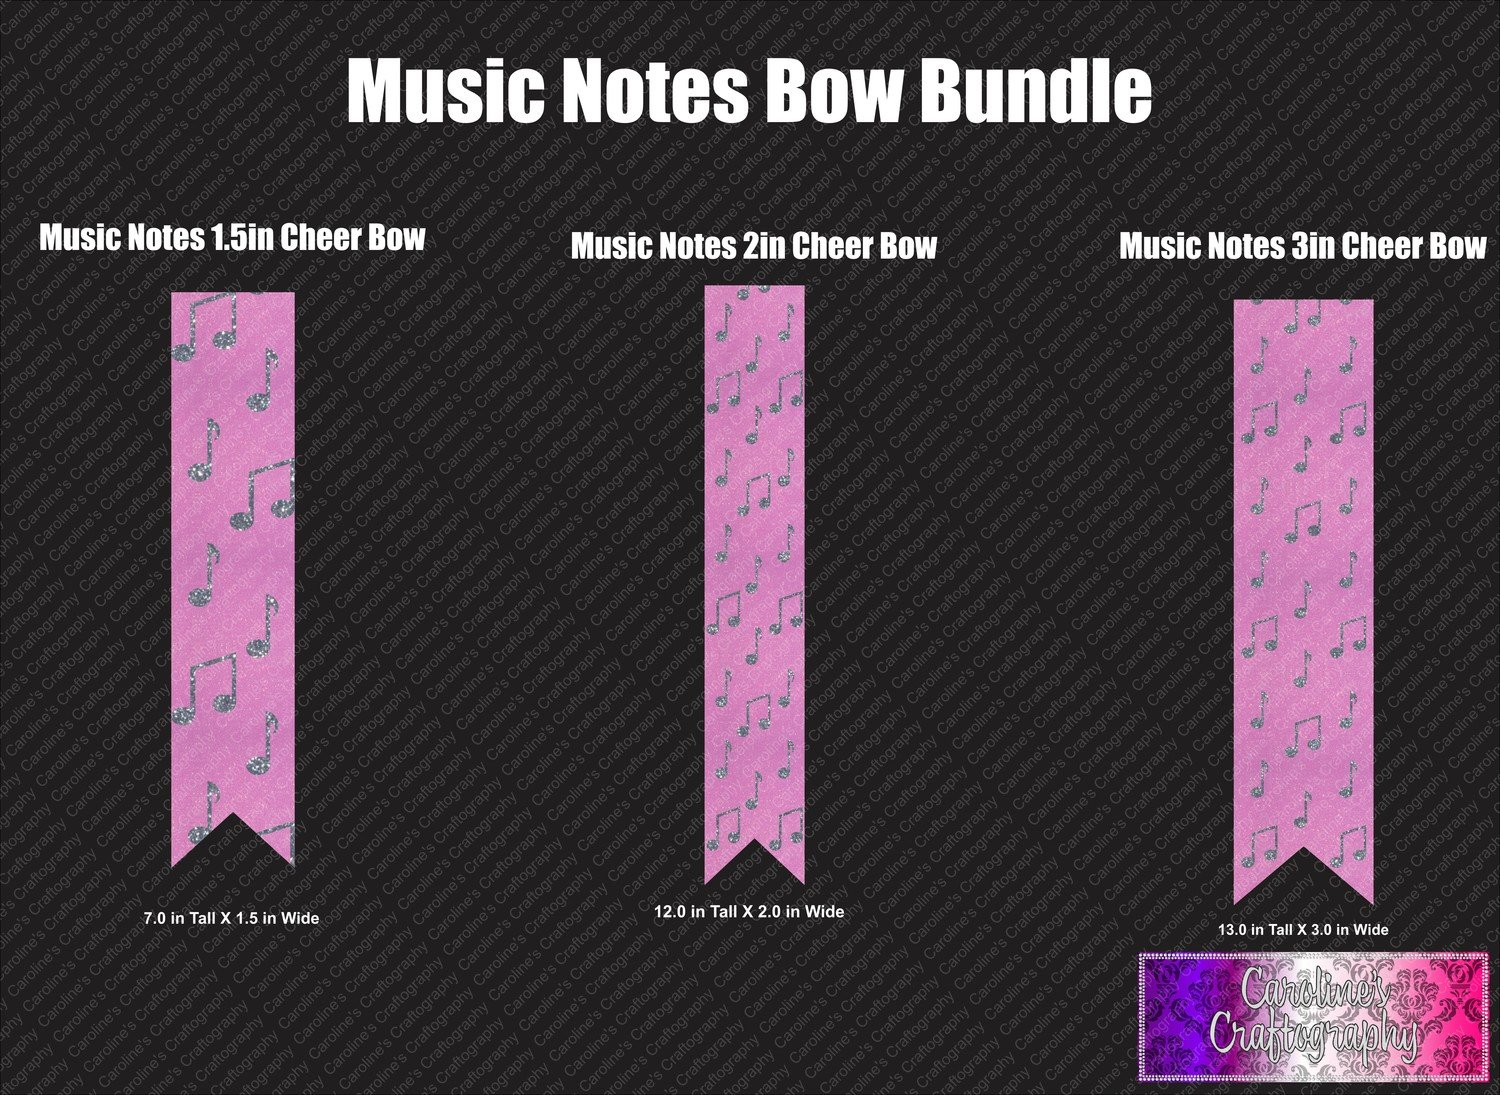 Music Notes Cheer Bow Vinyl Bundle